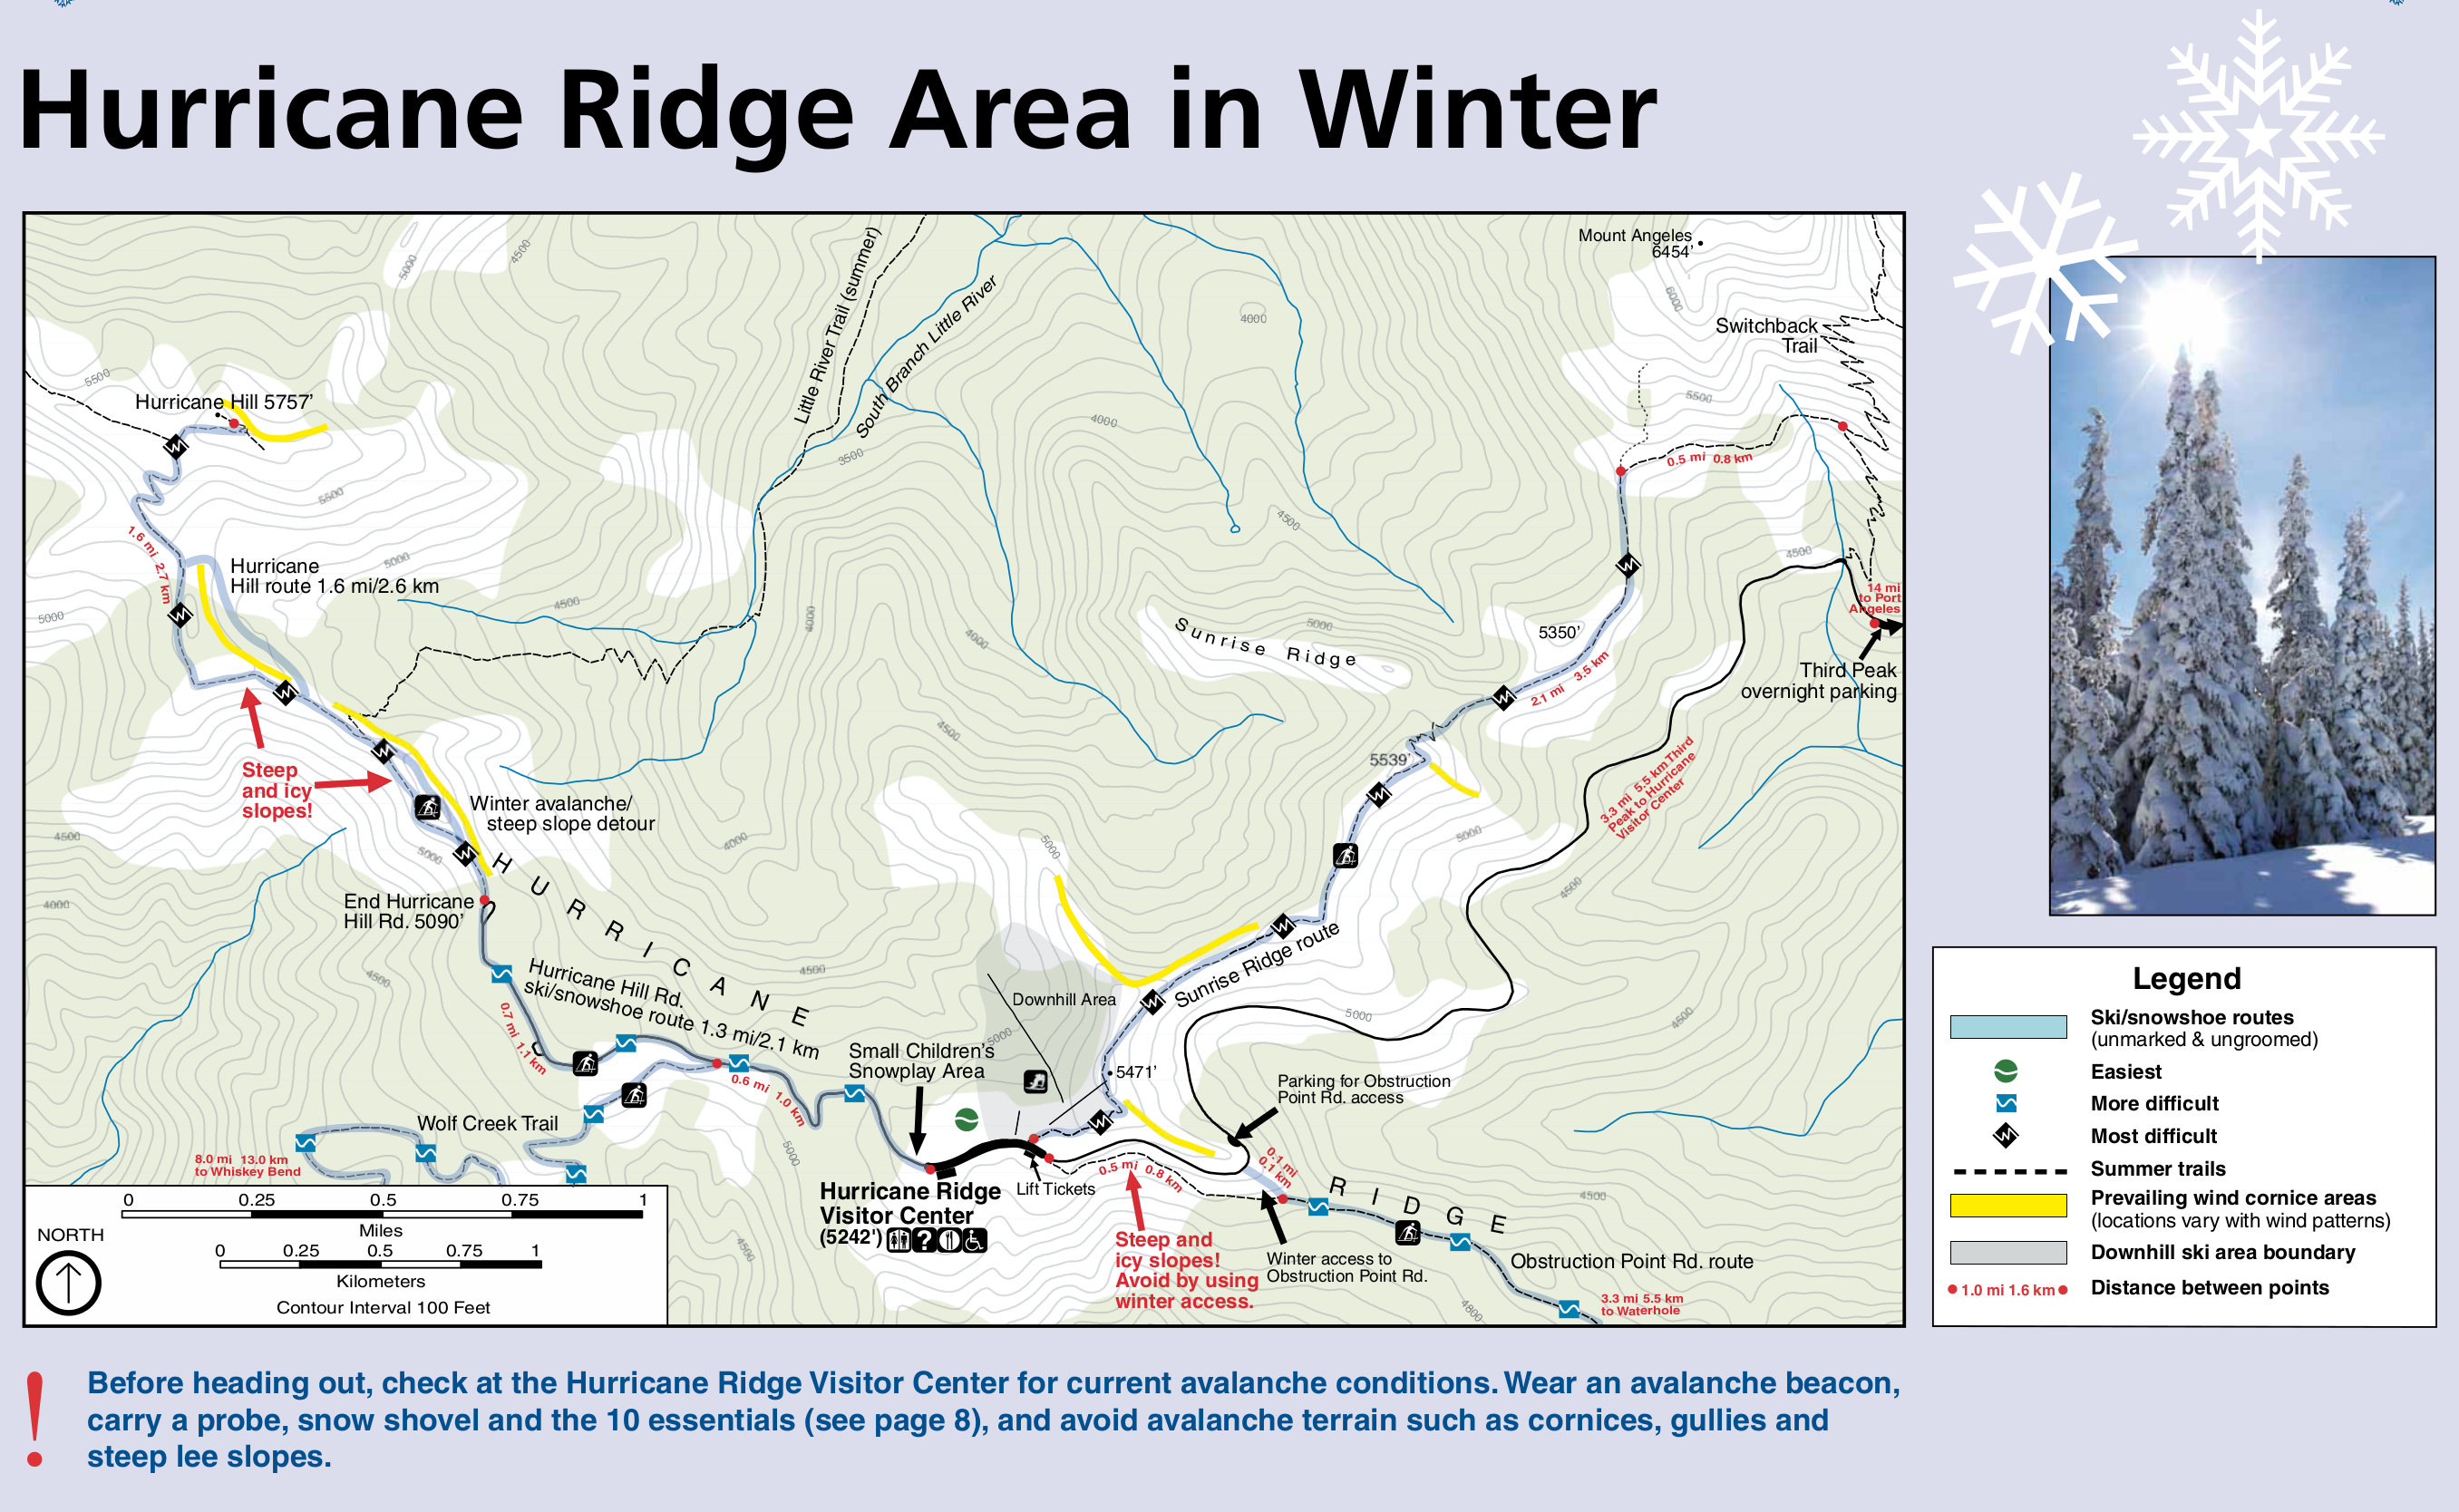 Olympic Maps | NPMaps.com - just free maps, period.